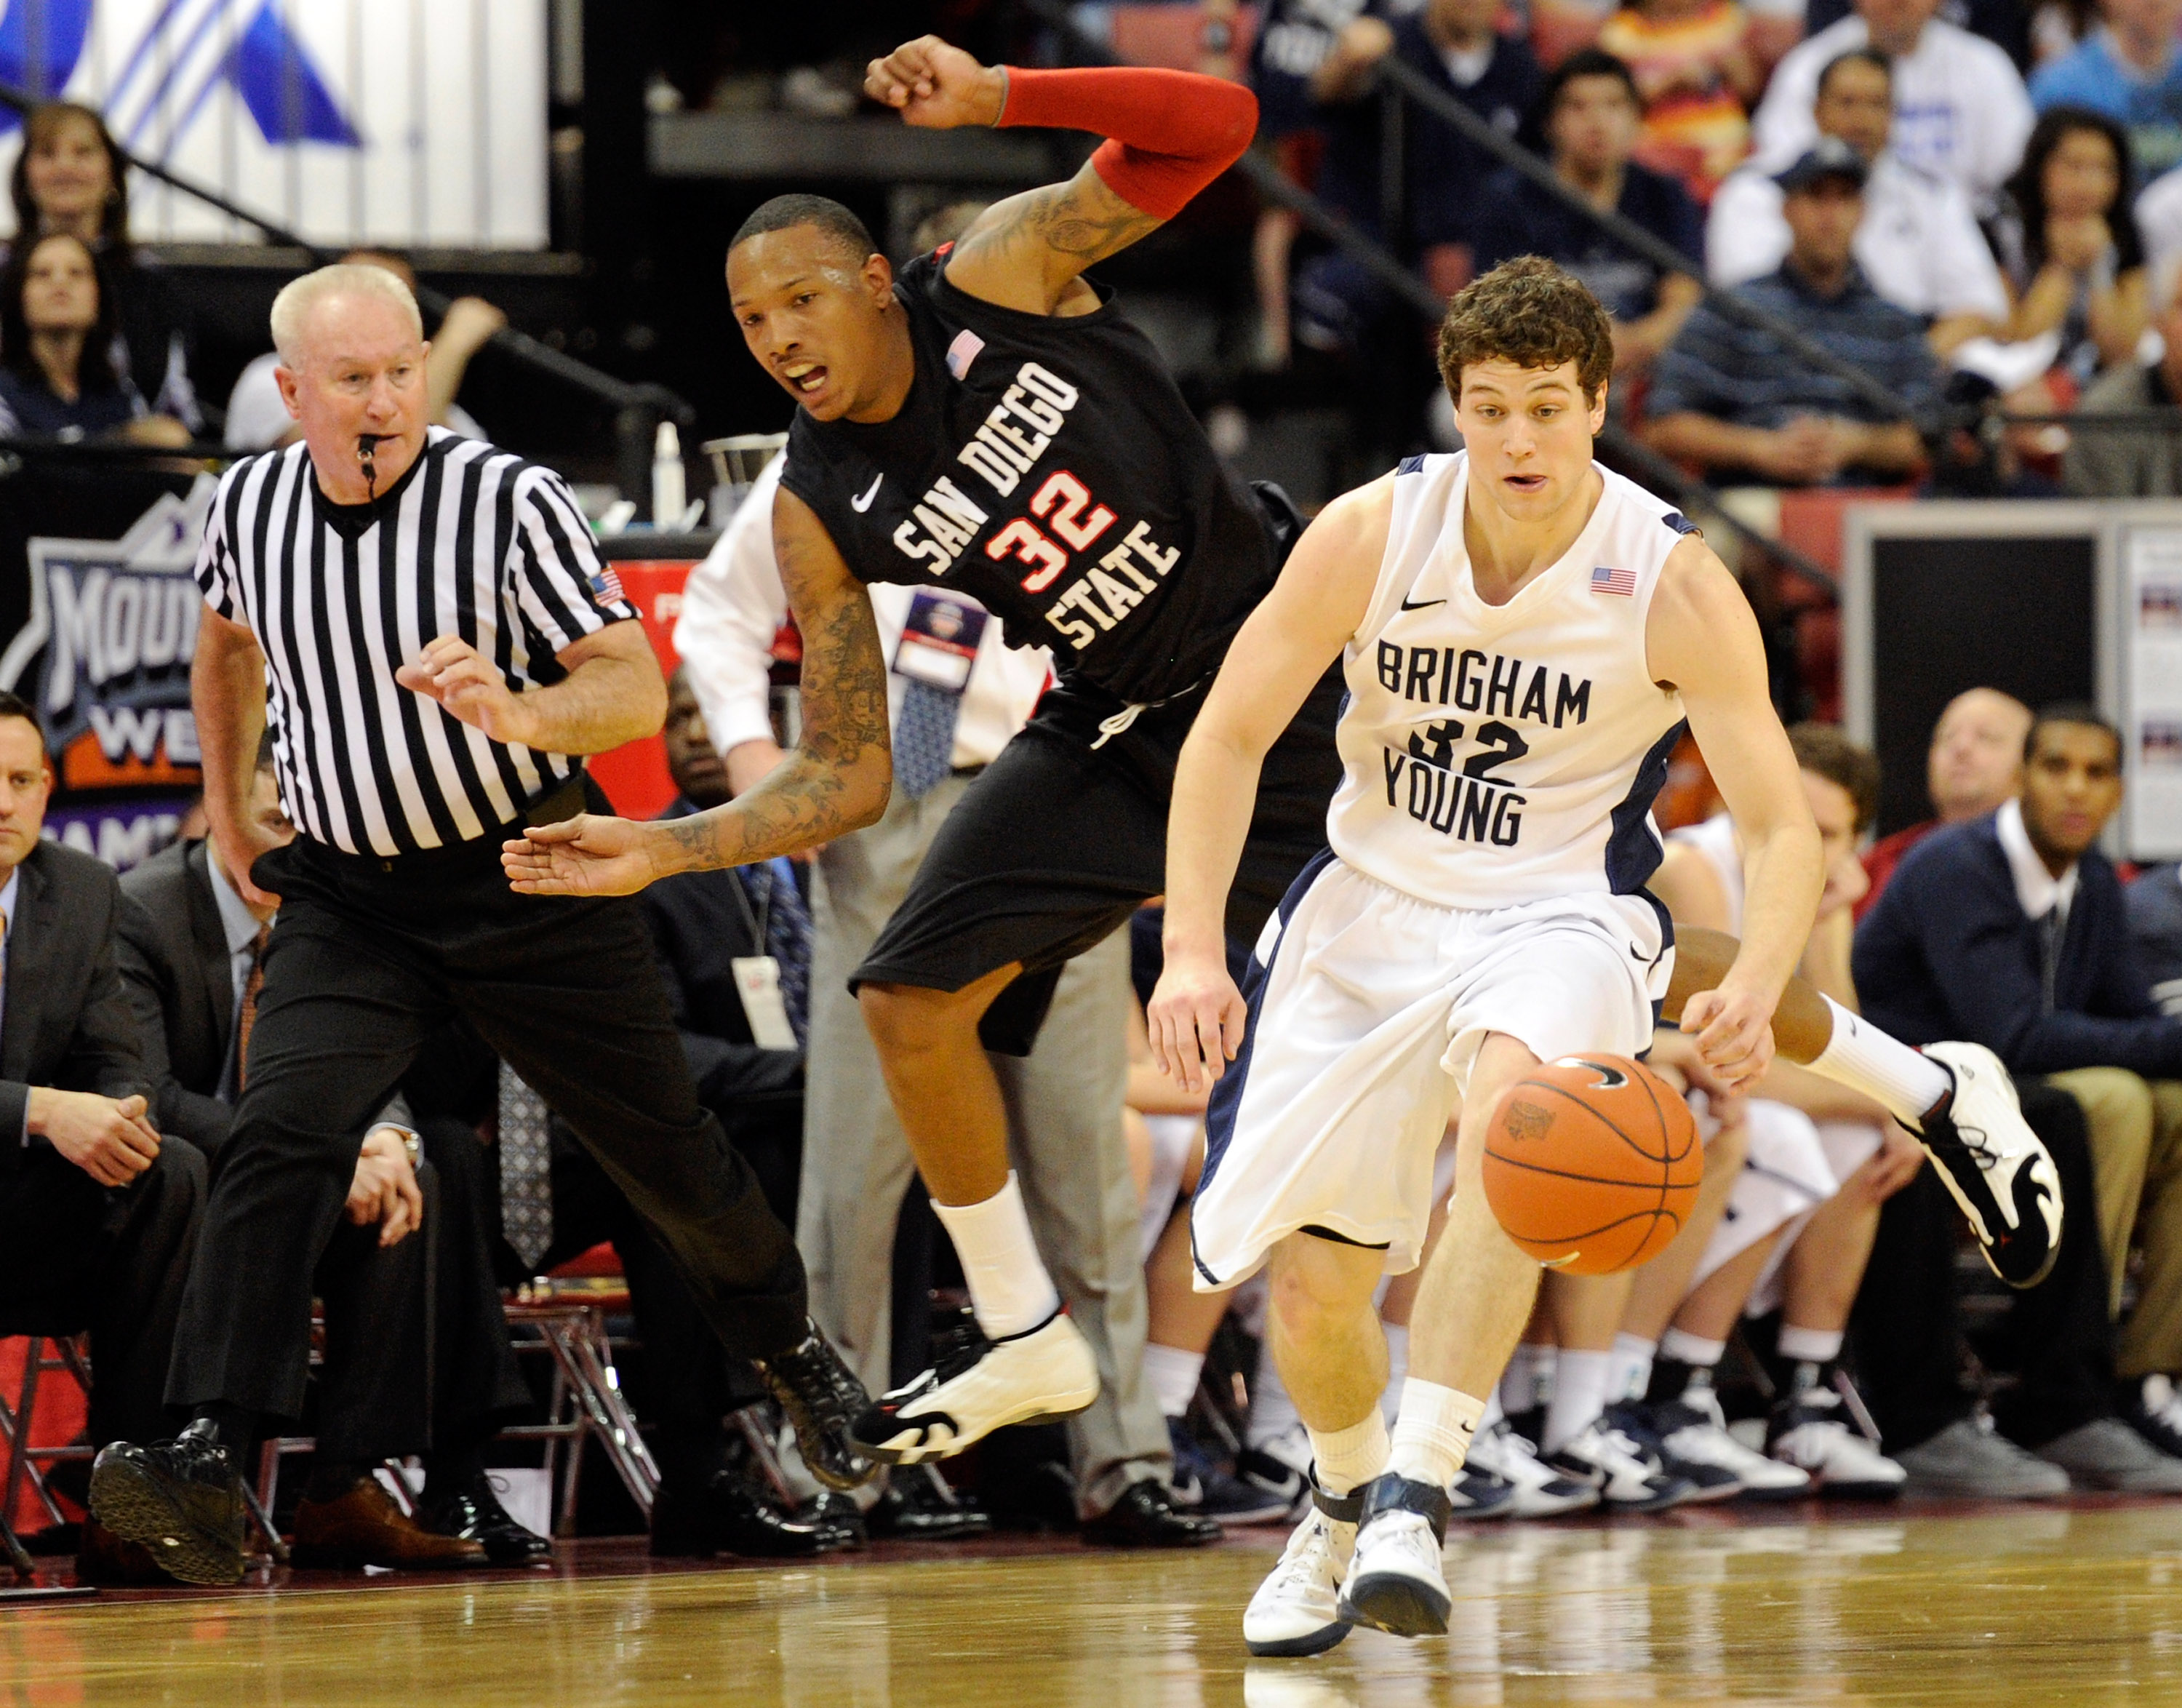 LAS VEGAS, NV - MARCH 12:  Jimmer Fredette #32 of the Brigham Young University Cougars gets away from Billy White #32 of the San Diego State Aztecs during the championship game of the Conoco Mountain West Conference Basketball tournament at the Thomas & M